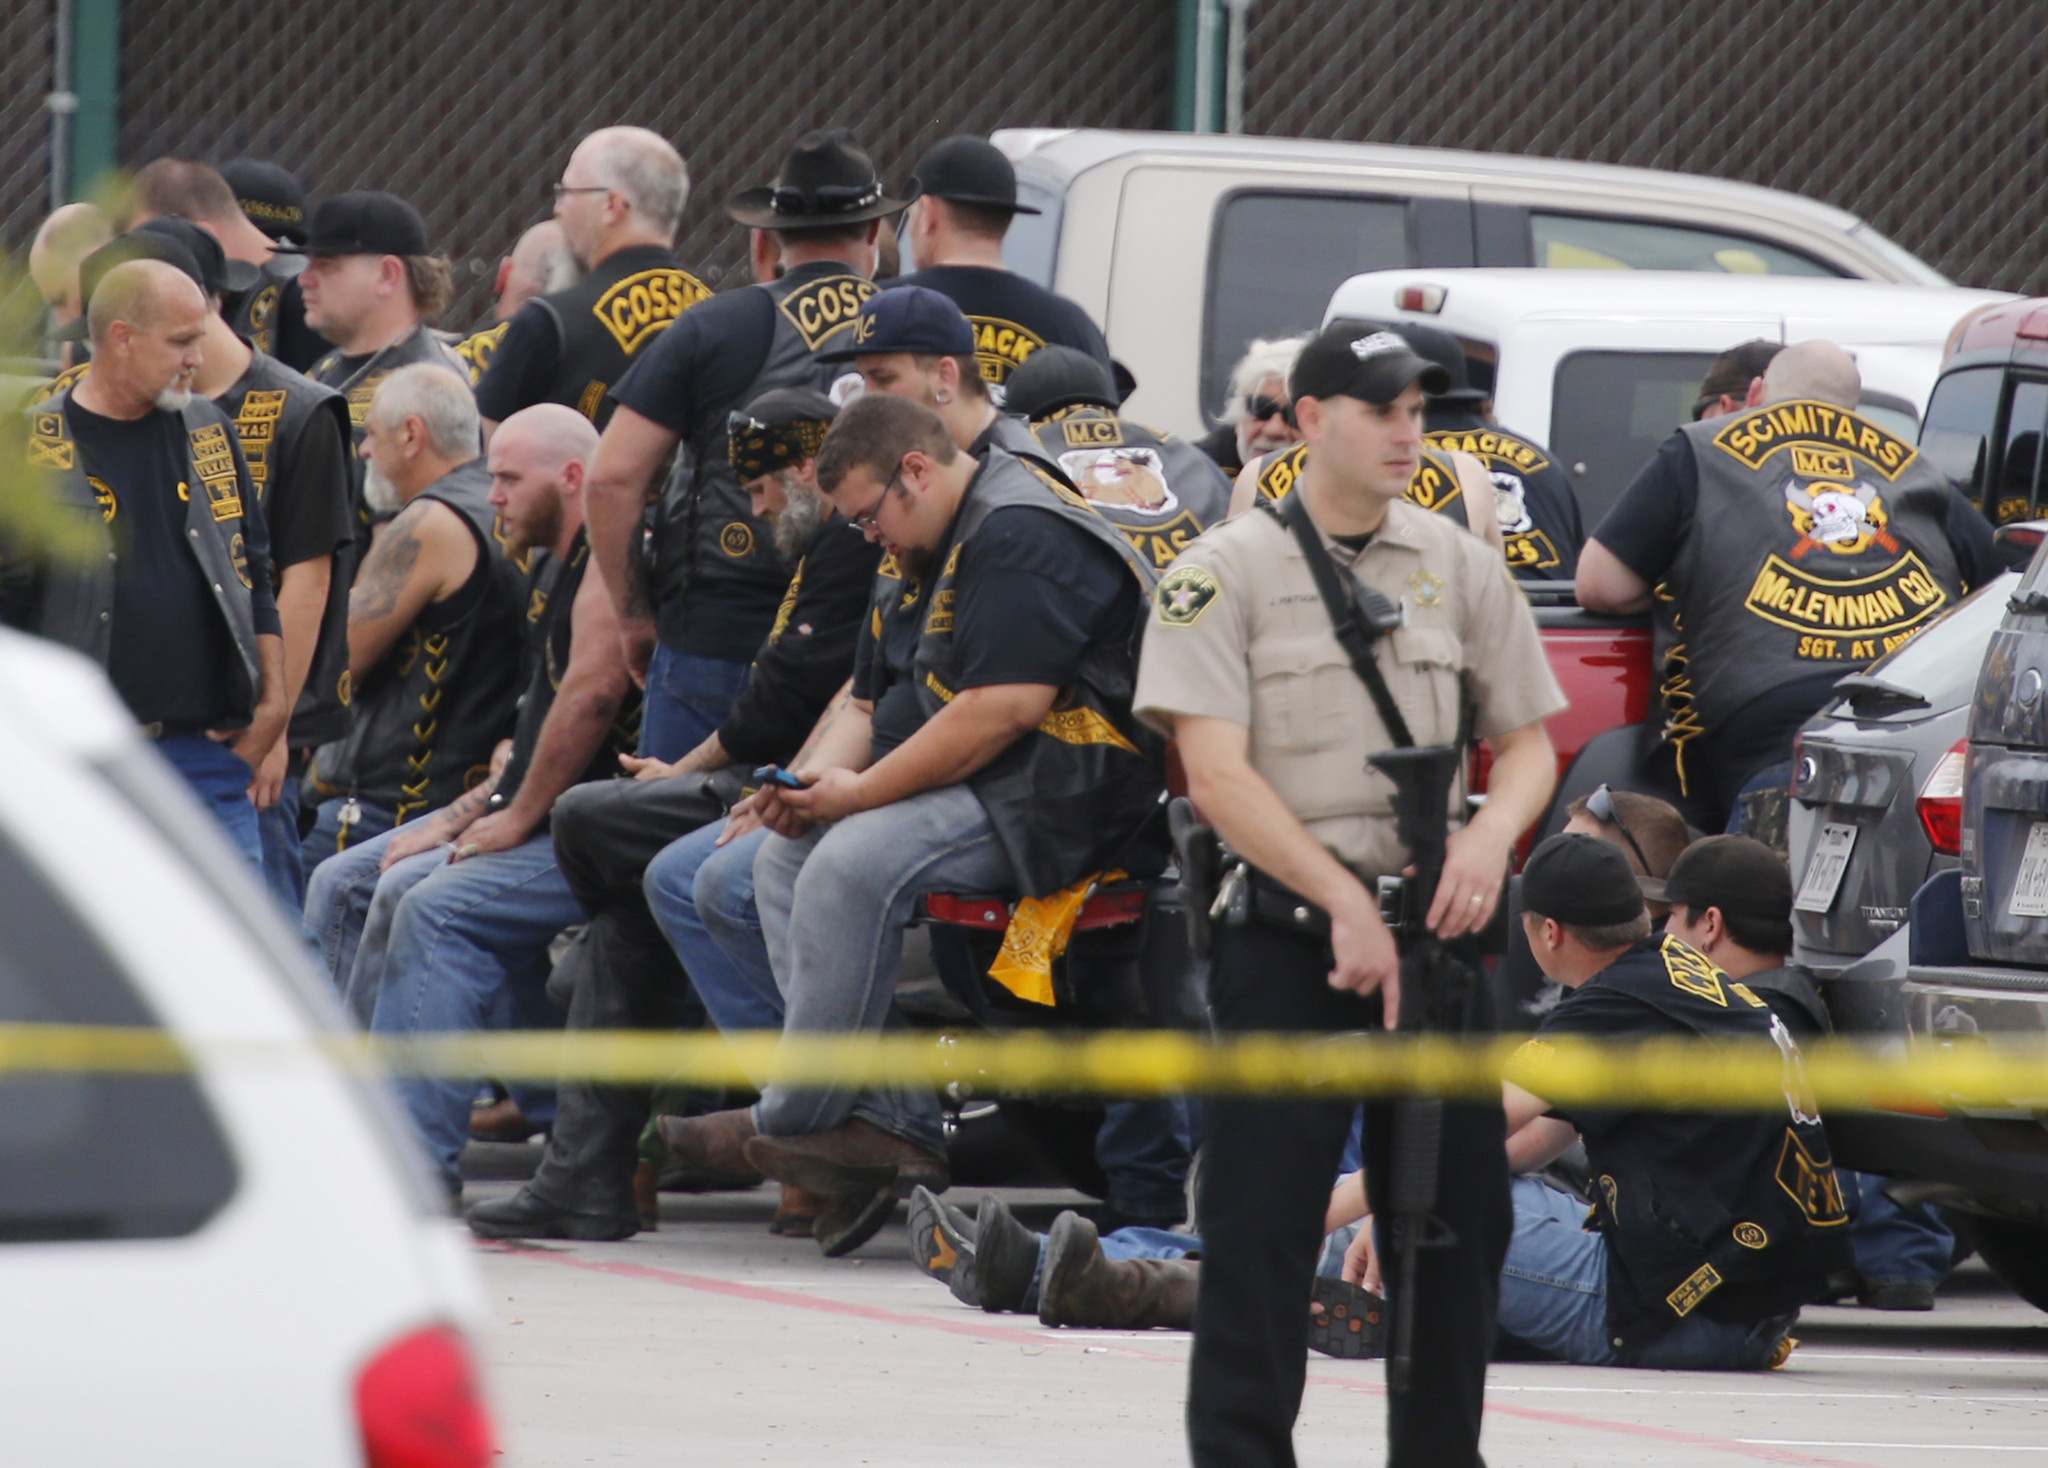 Charges filed against 170 motorcycle gang members in Texas